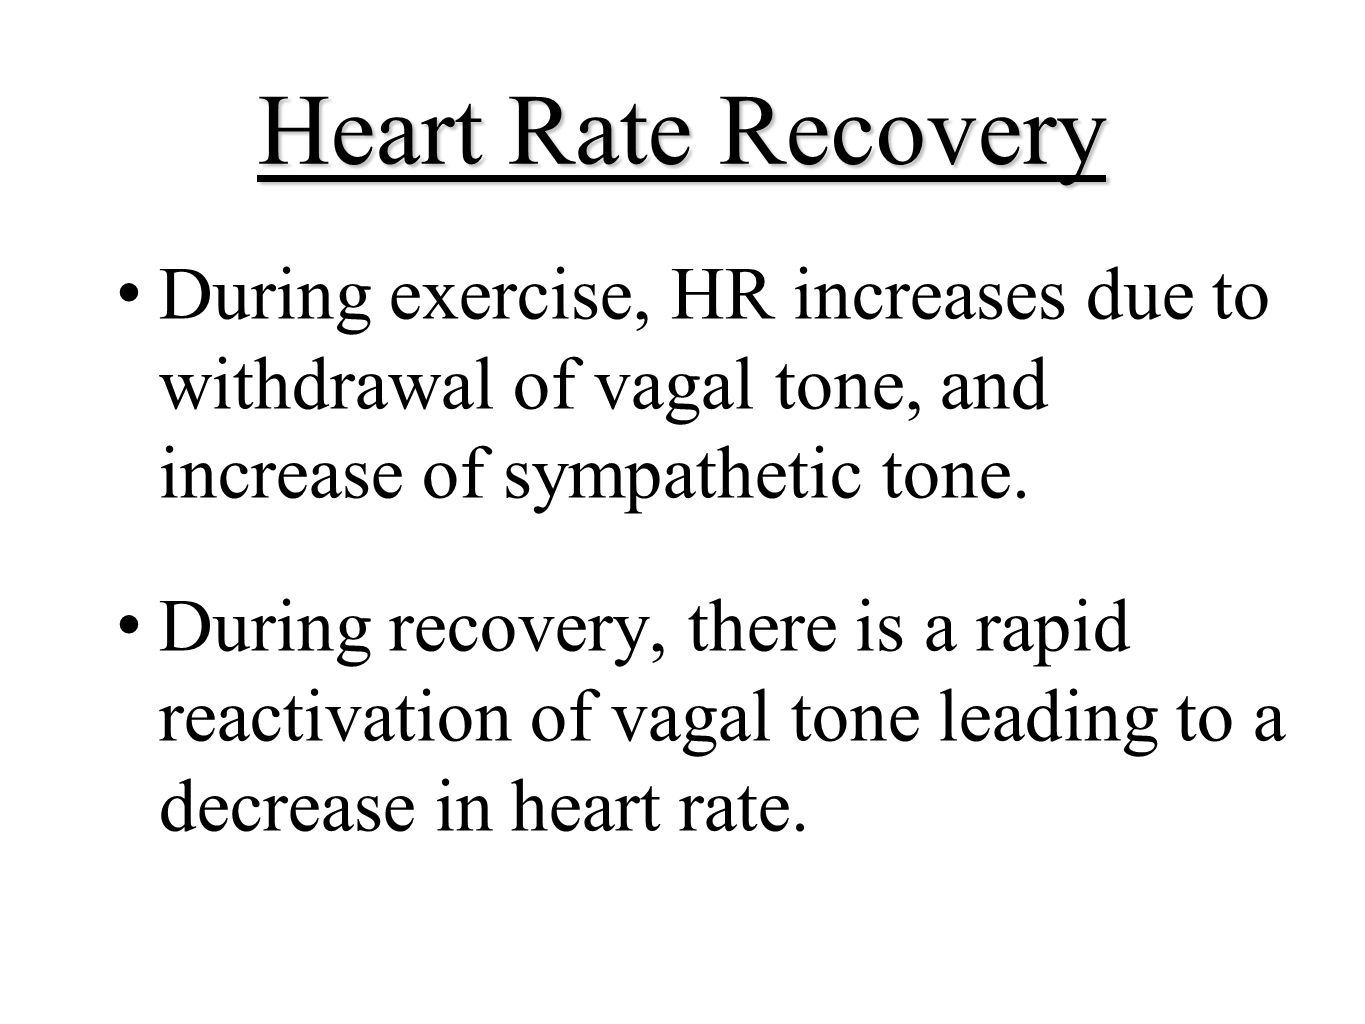 Heart Rate Recovery During exercise, HR increases due to withdrawal of vagal tone, and increase of sympathetic tone.